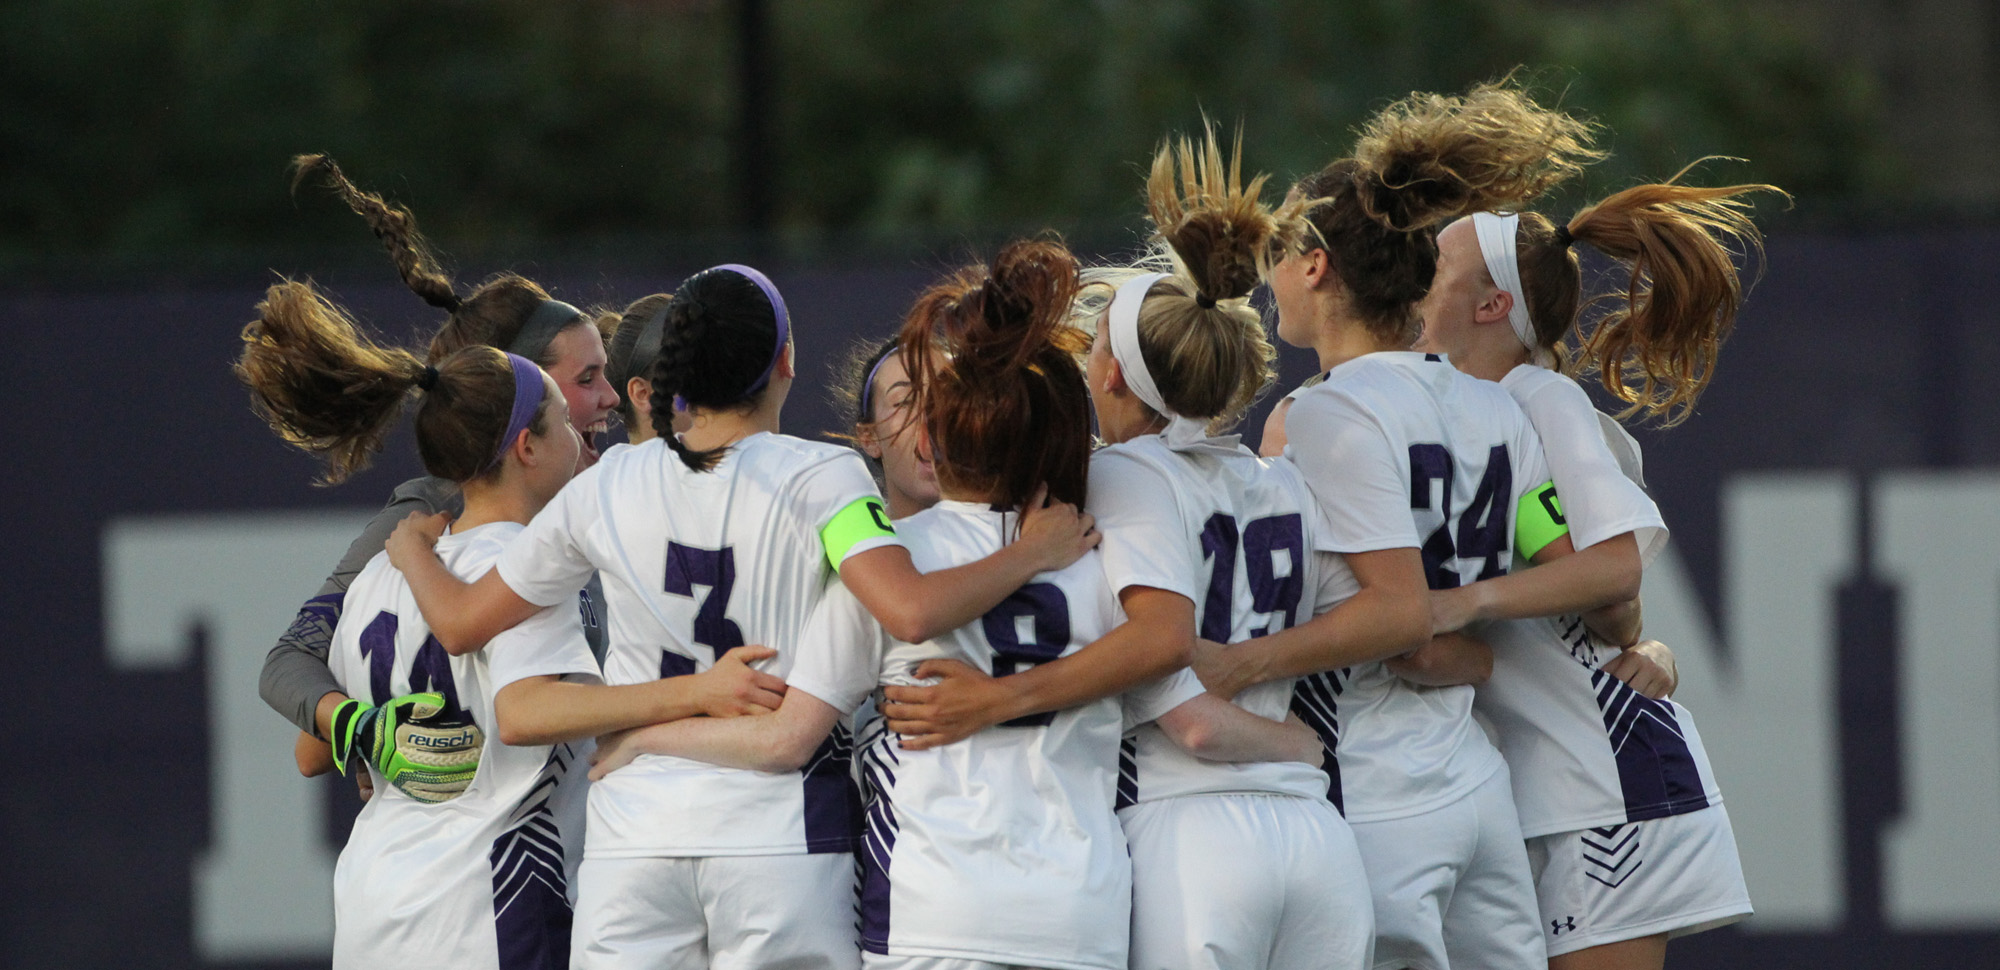 The women's soccer team will open the 2019 season on Aug. 31 ranked 25th in the initial United Soccer Coaches Division III Top 25, which was released by the organization on Tuesday. © Photo by Timothy R. Dougherty / doubleeaglephotography.com